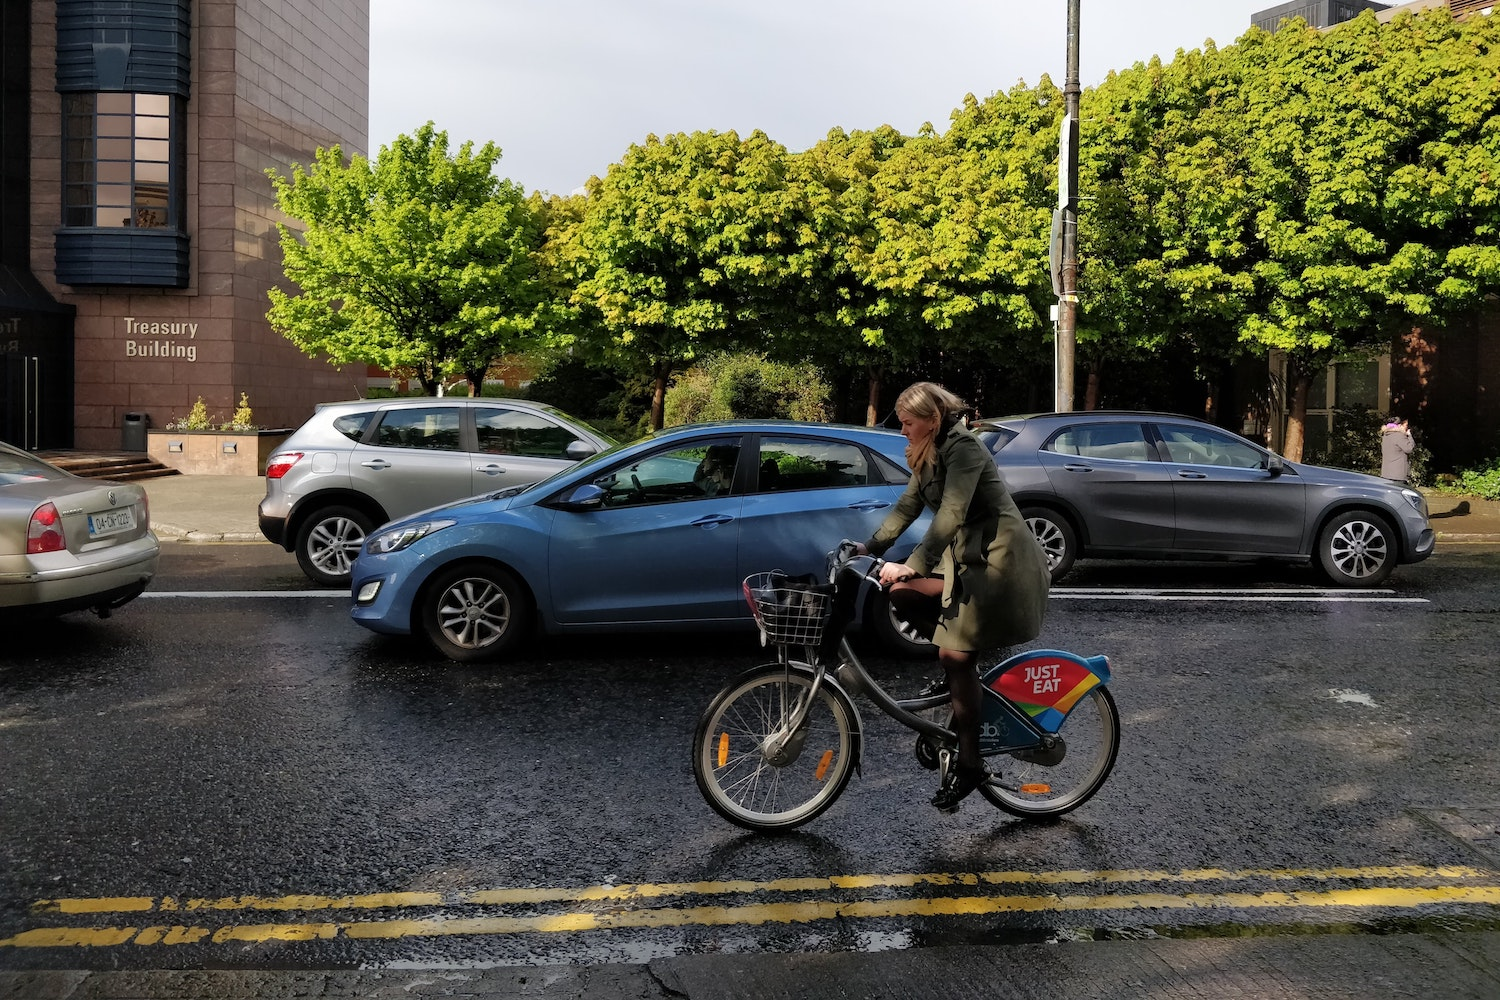 Car News | Maynooth University to study commuting patterns | CompleteCar.ie